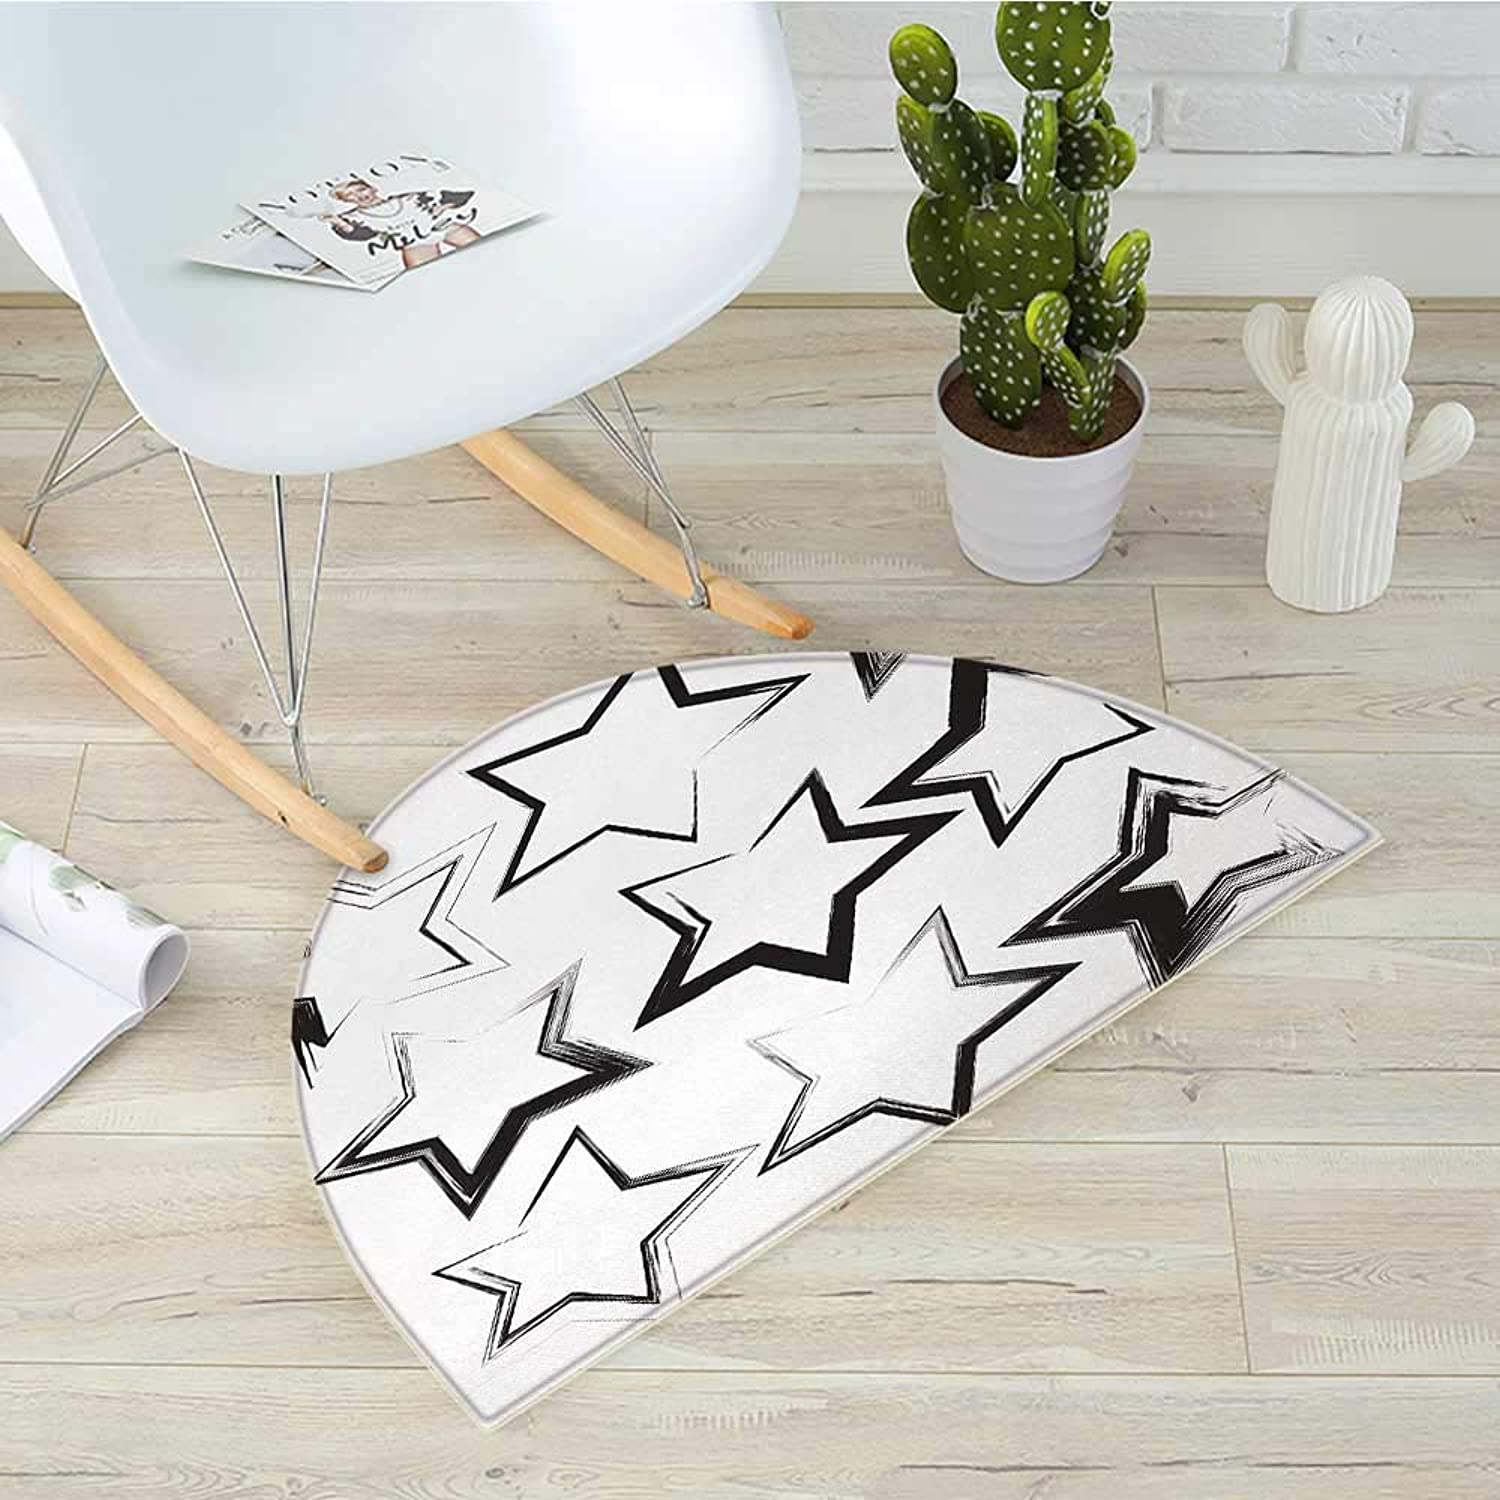 Grunge Half Round Door mats Grunge Star Brush Strokes with Different Borders and Angles Artisan Design Print Bathroom Mat H 31.5  xD 47.2  Charcoal Grey